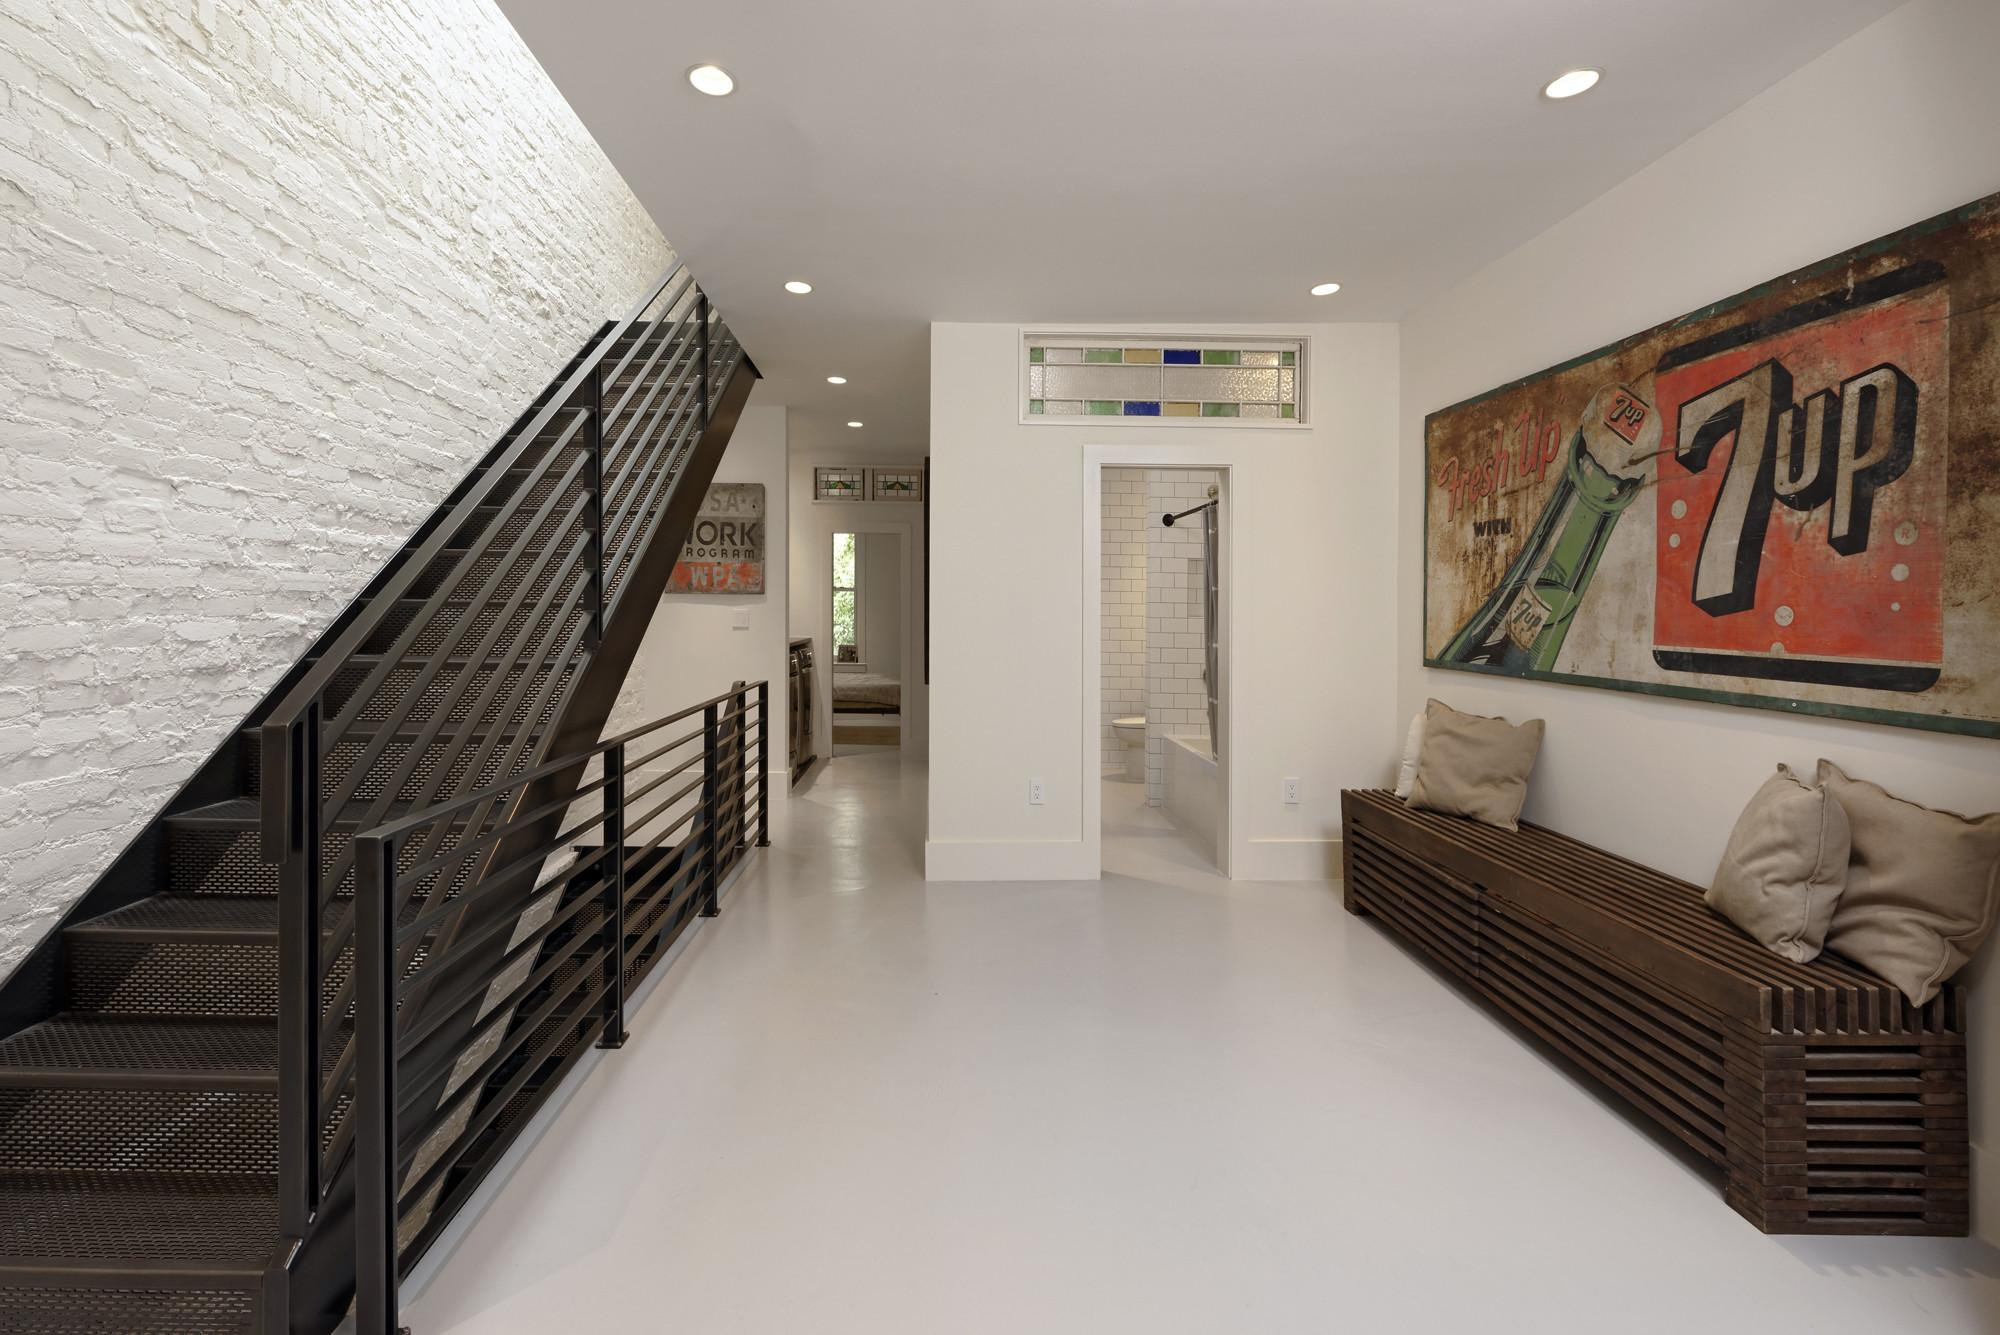 Industrial Chic Row Home Renovation Dupont Circle